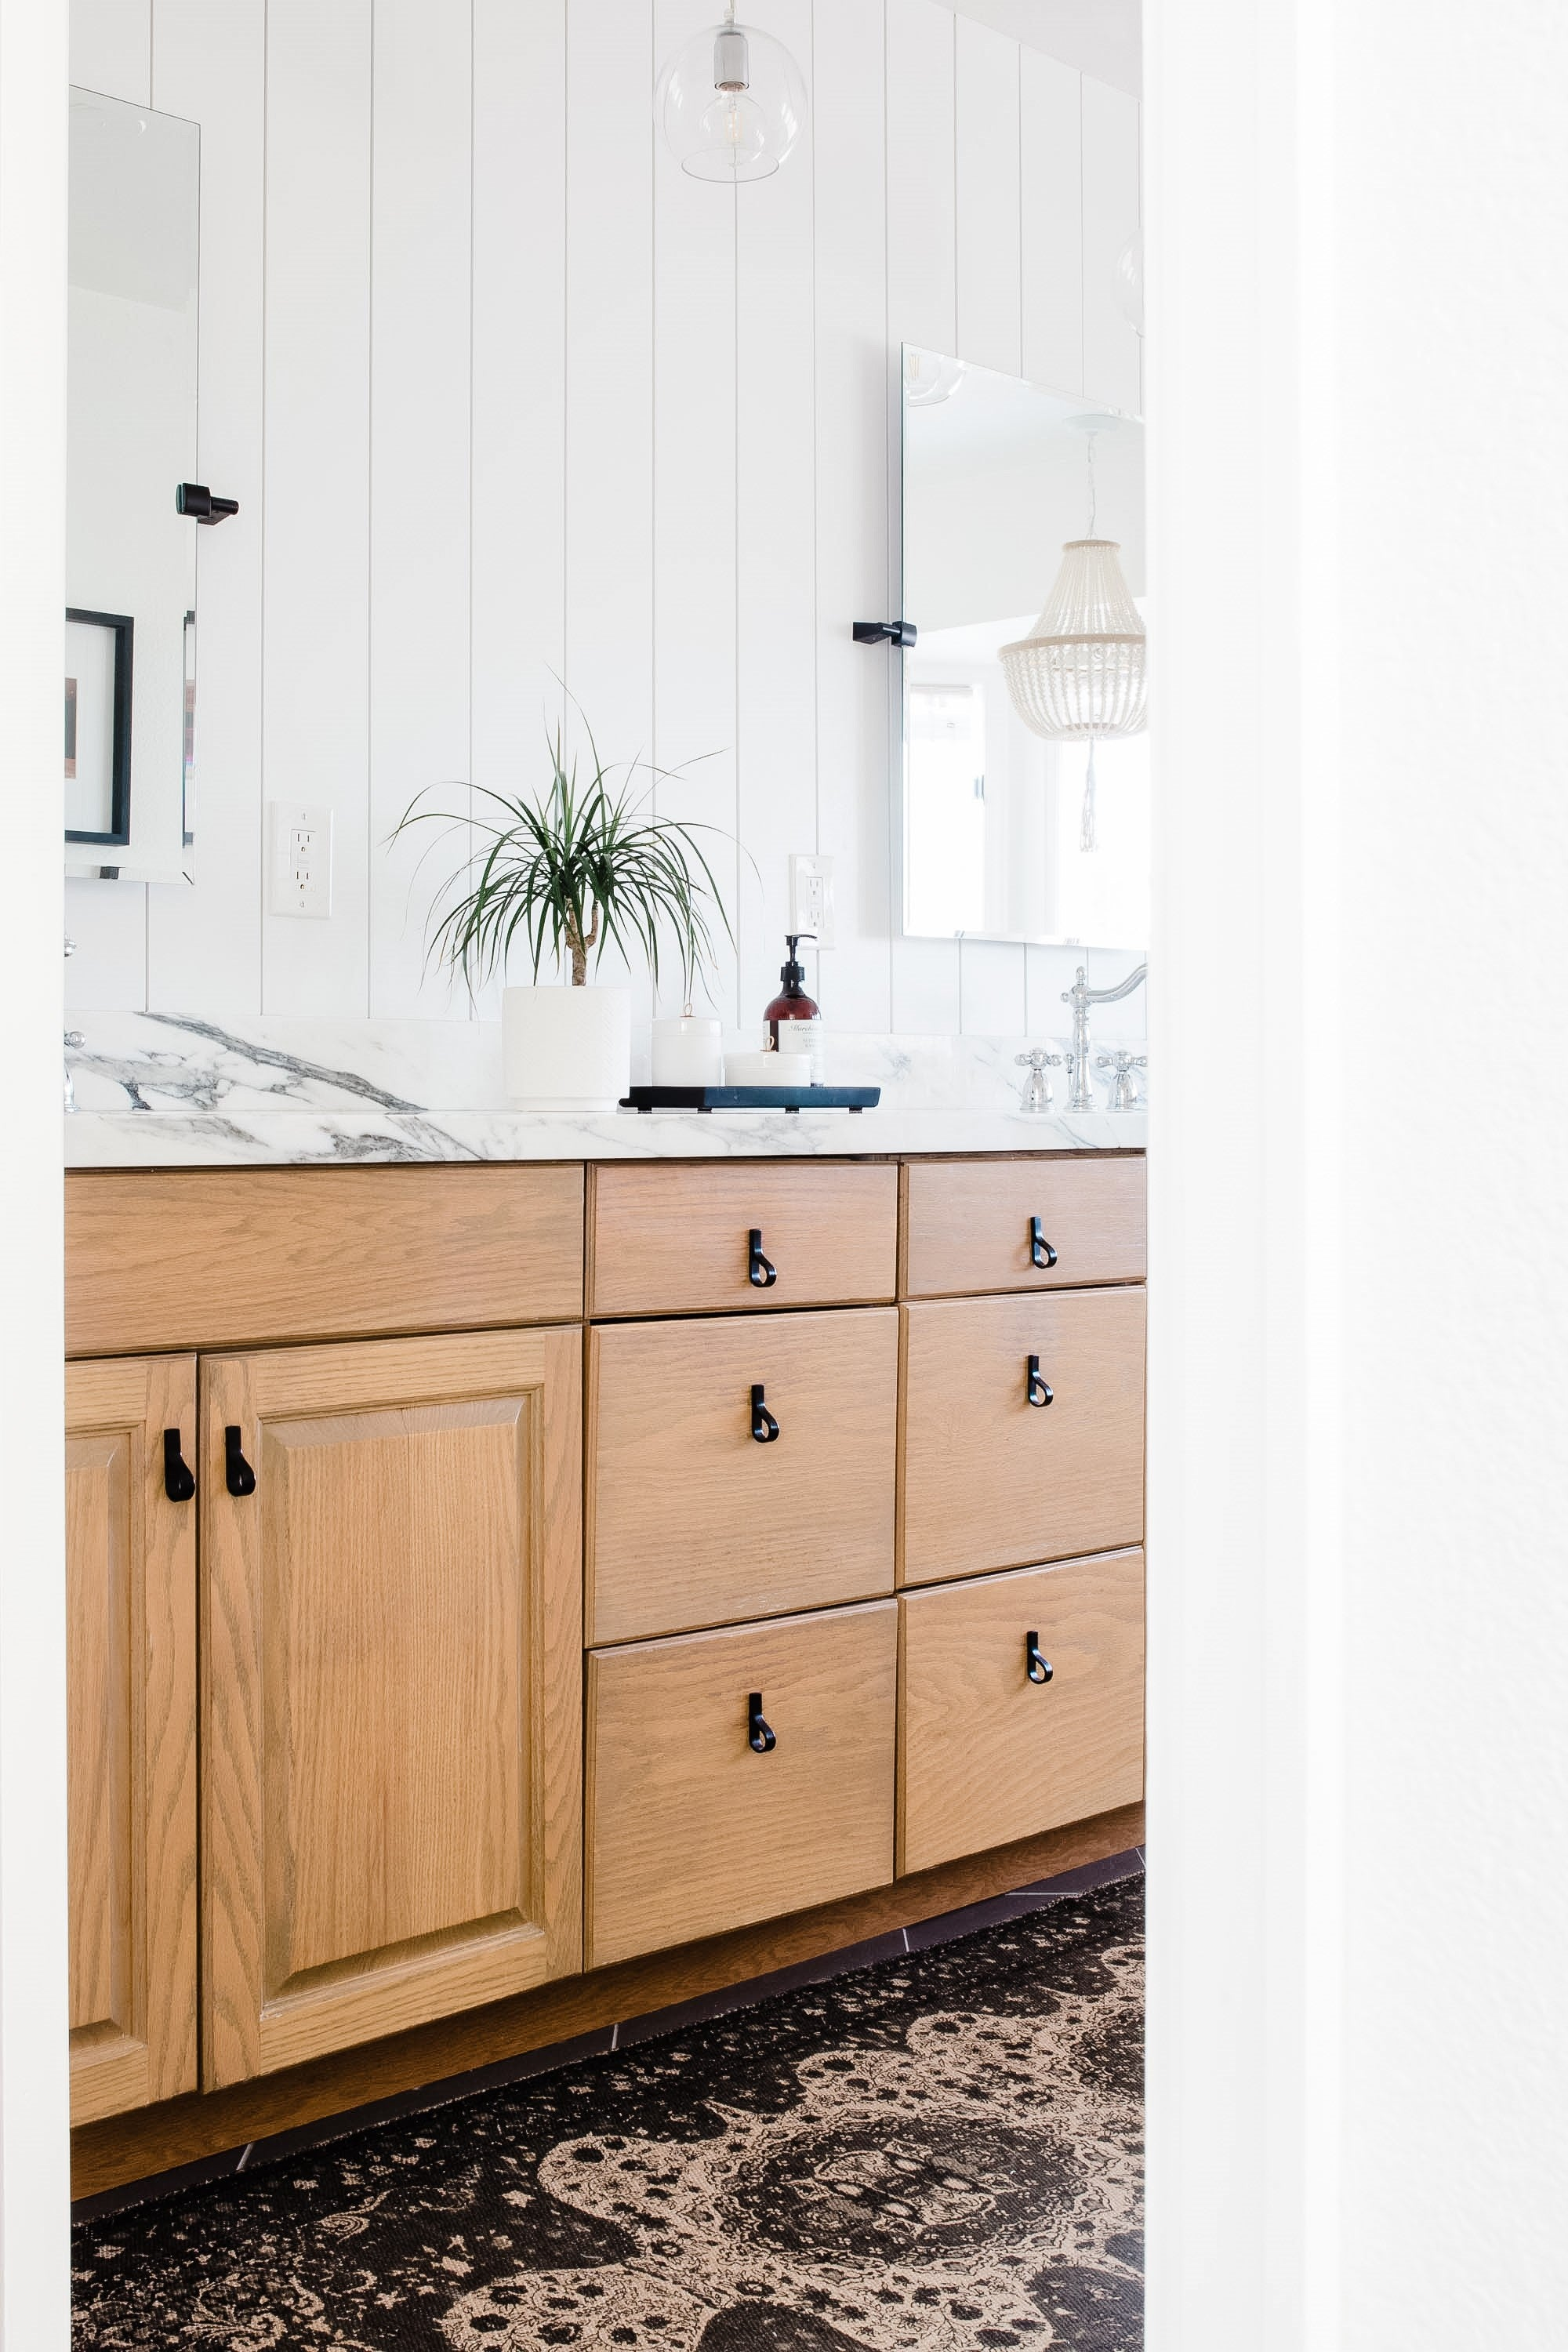 California Casual Light and Bright Neutral Organic Materials and Marble by Peggy Haddad Interiors